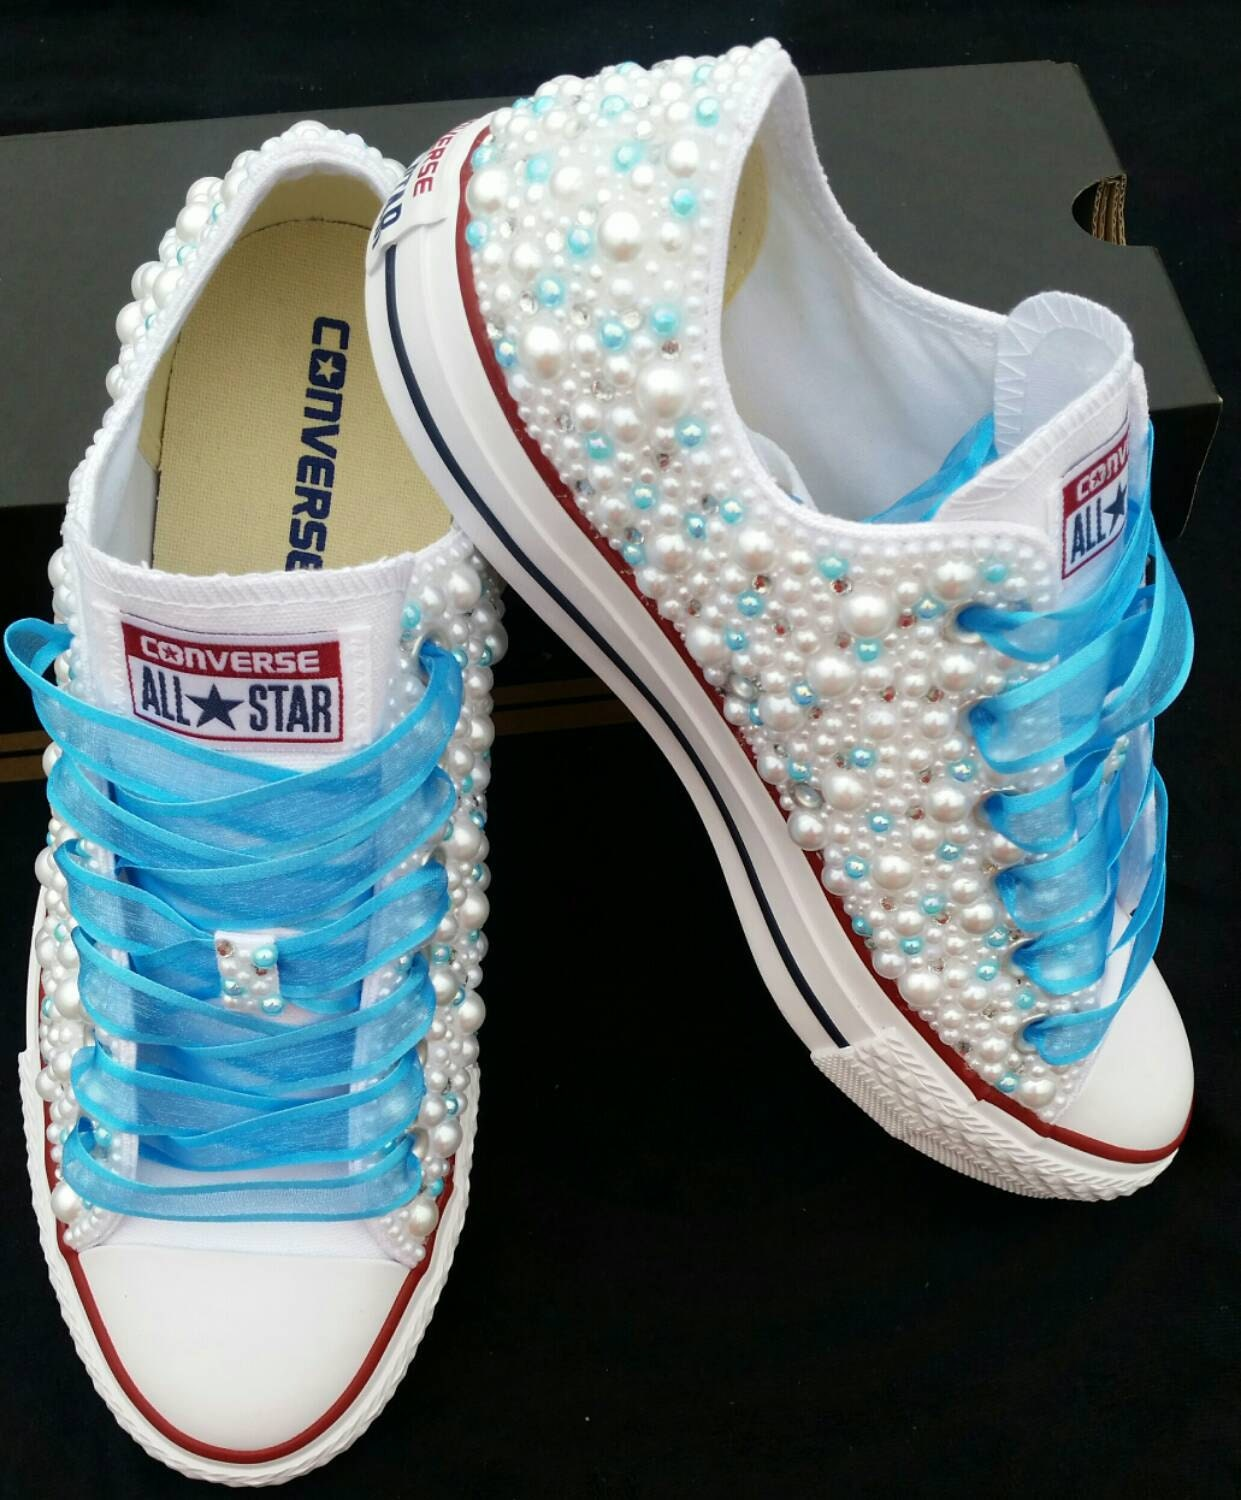 aad21b9a6de Wedding Converse- Bridal Sneakers- Bling   Pearls Custom Converse Sneakers-  Bridal Chuck Taylors- Wedding Sneakers- Converse hochzeit- Bride